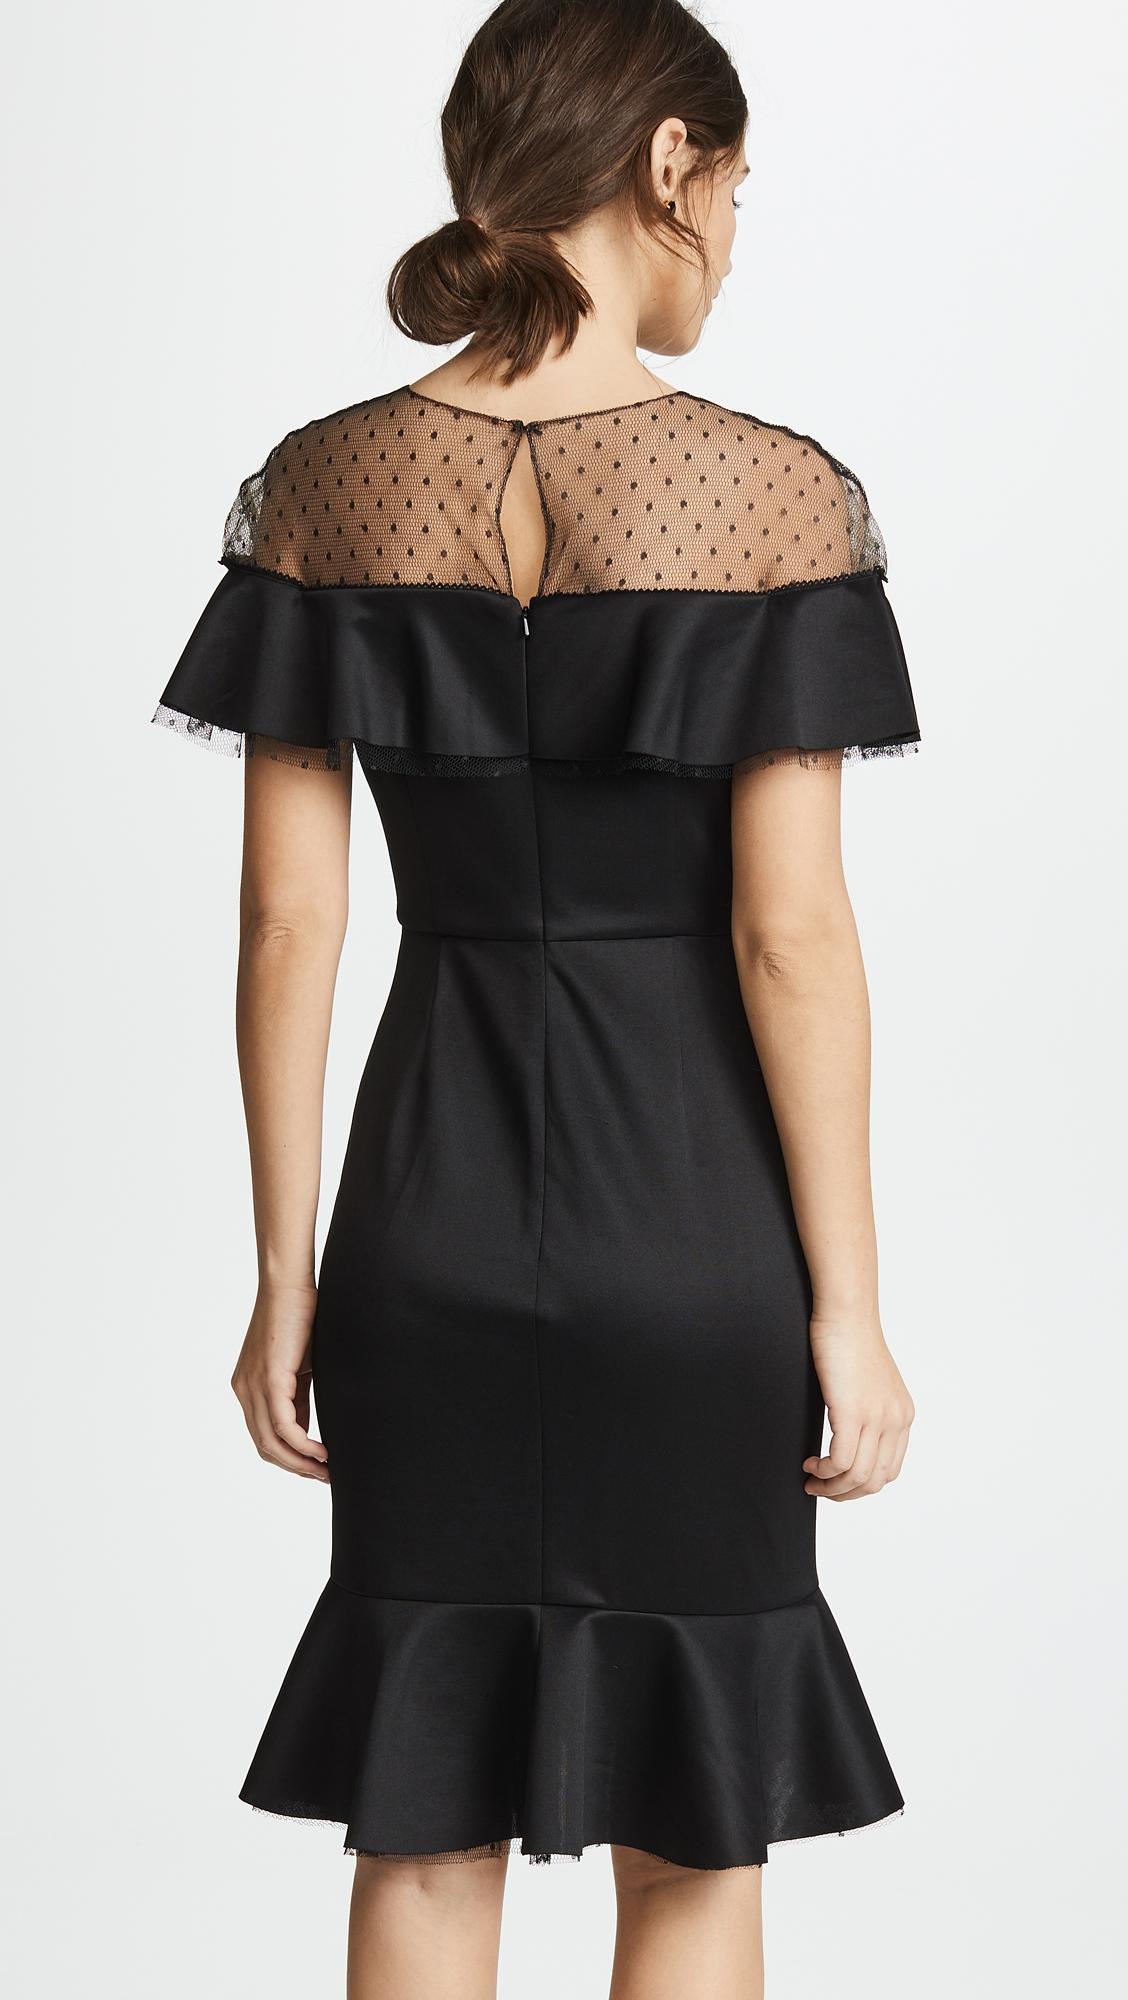 a83fe4d8c77a0 Gallery. Previously sold at: Shopbop · Women's Neoprene Dresses Women's Black  Cocktail Dresses